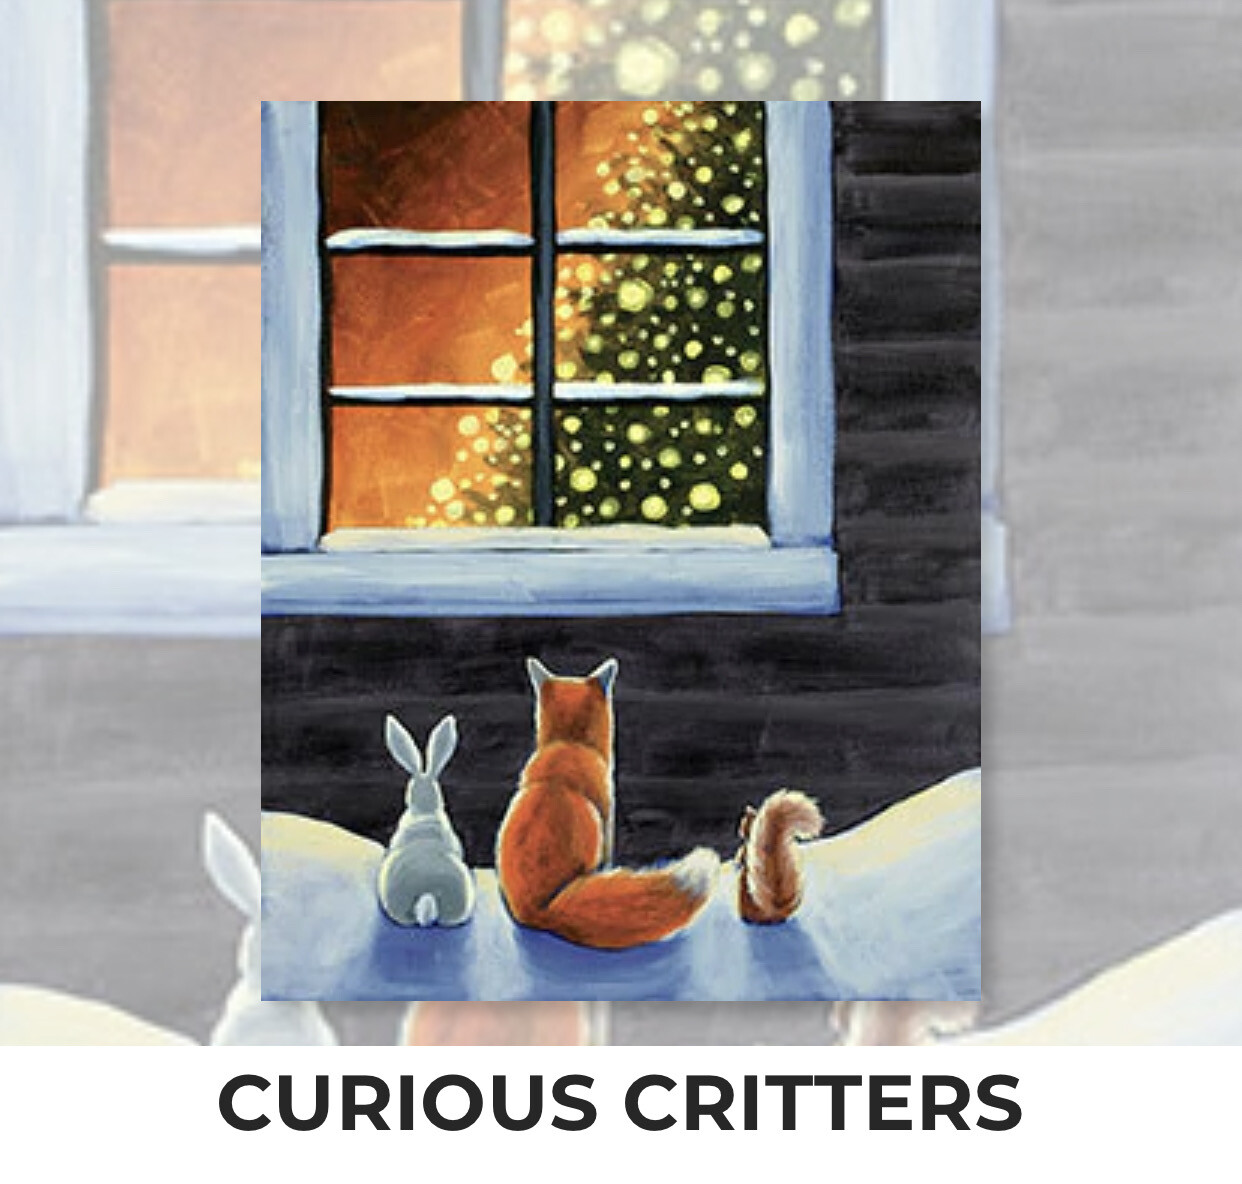 Curious Critters ADULT Acrylic Paint On Canvas DIY Art Kit - 3 Week Special Order